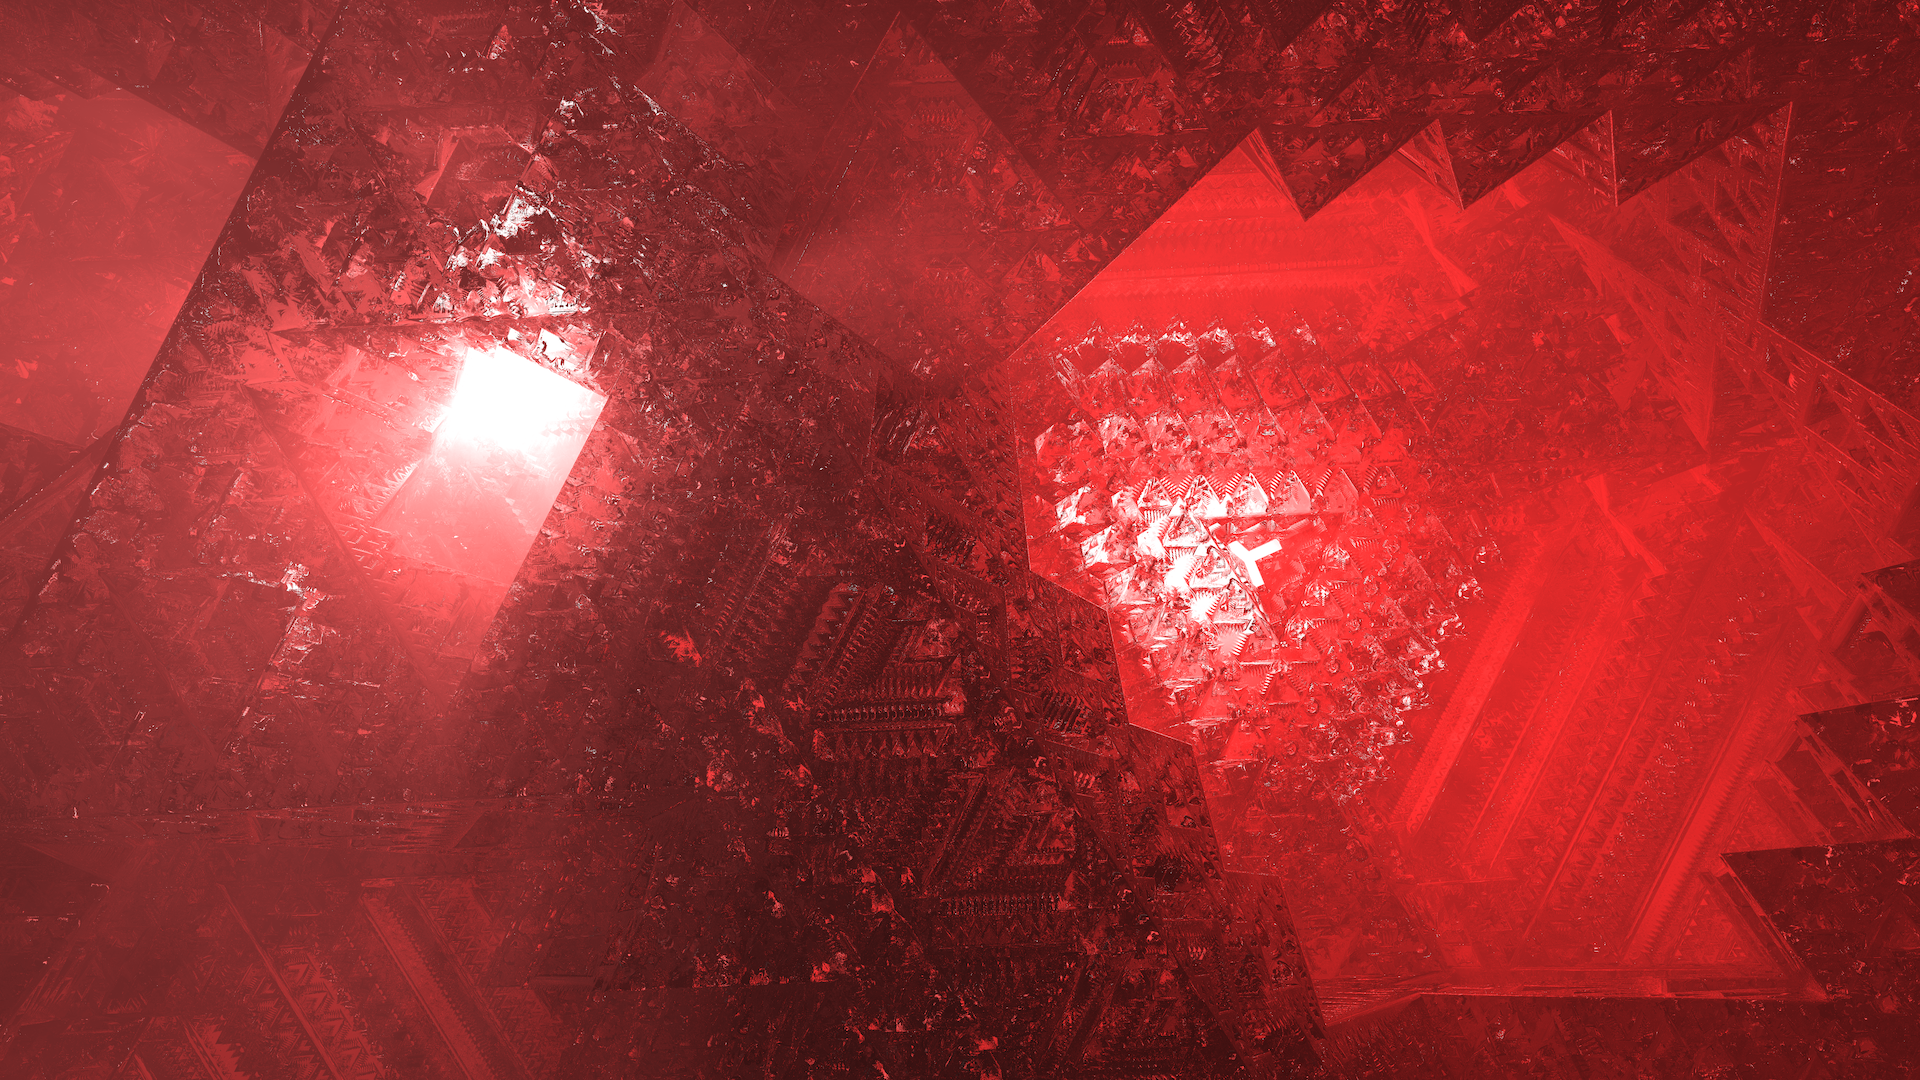 Here are Holocron and Holocron II my latest two 3d fractal 1920x1080